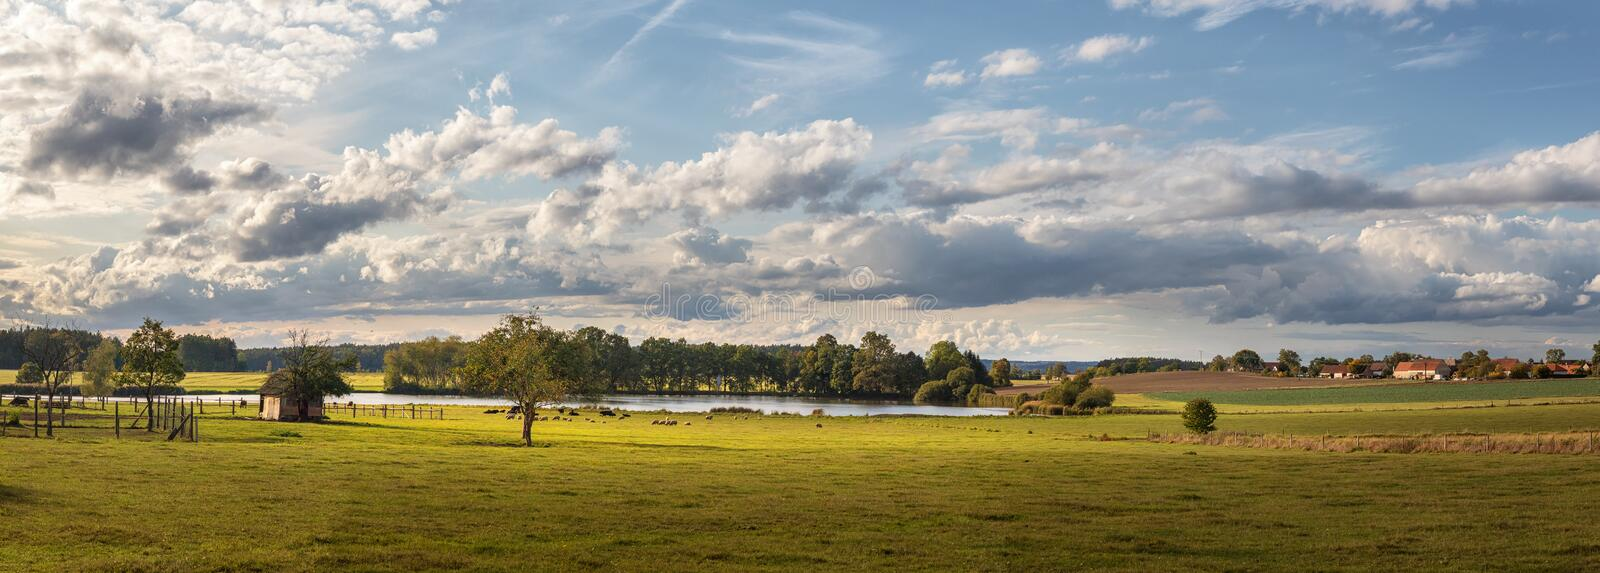 Landscape with blue sky and clouds - panorama of rural countryside with pond royalty free stock photo